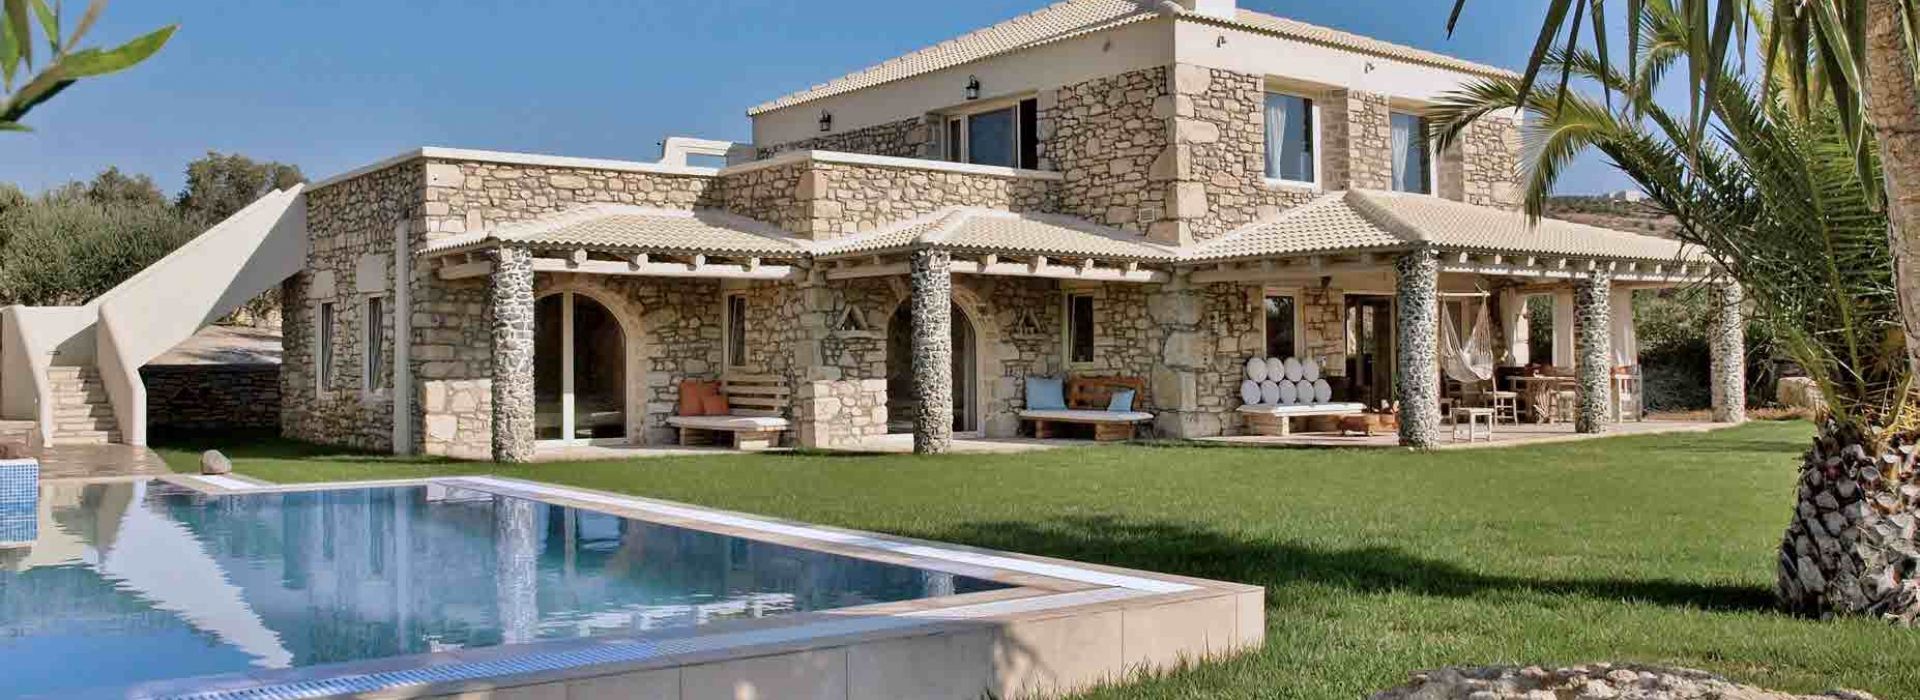 VILLA 270 m² FOR SALE IN PITSIDIA